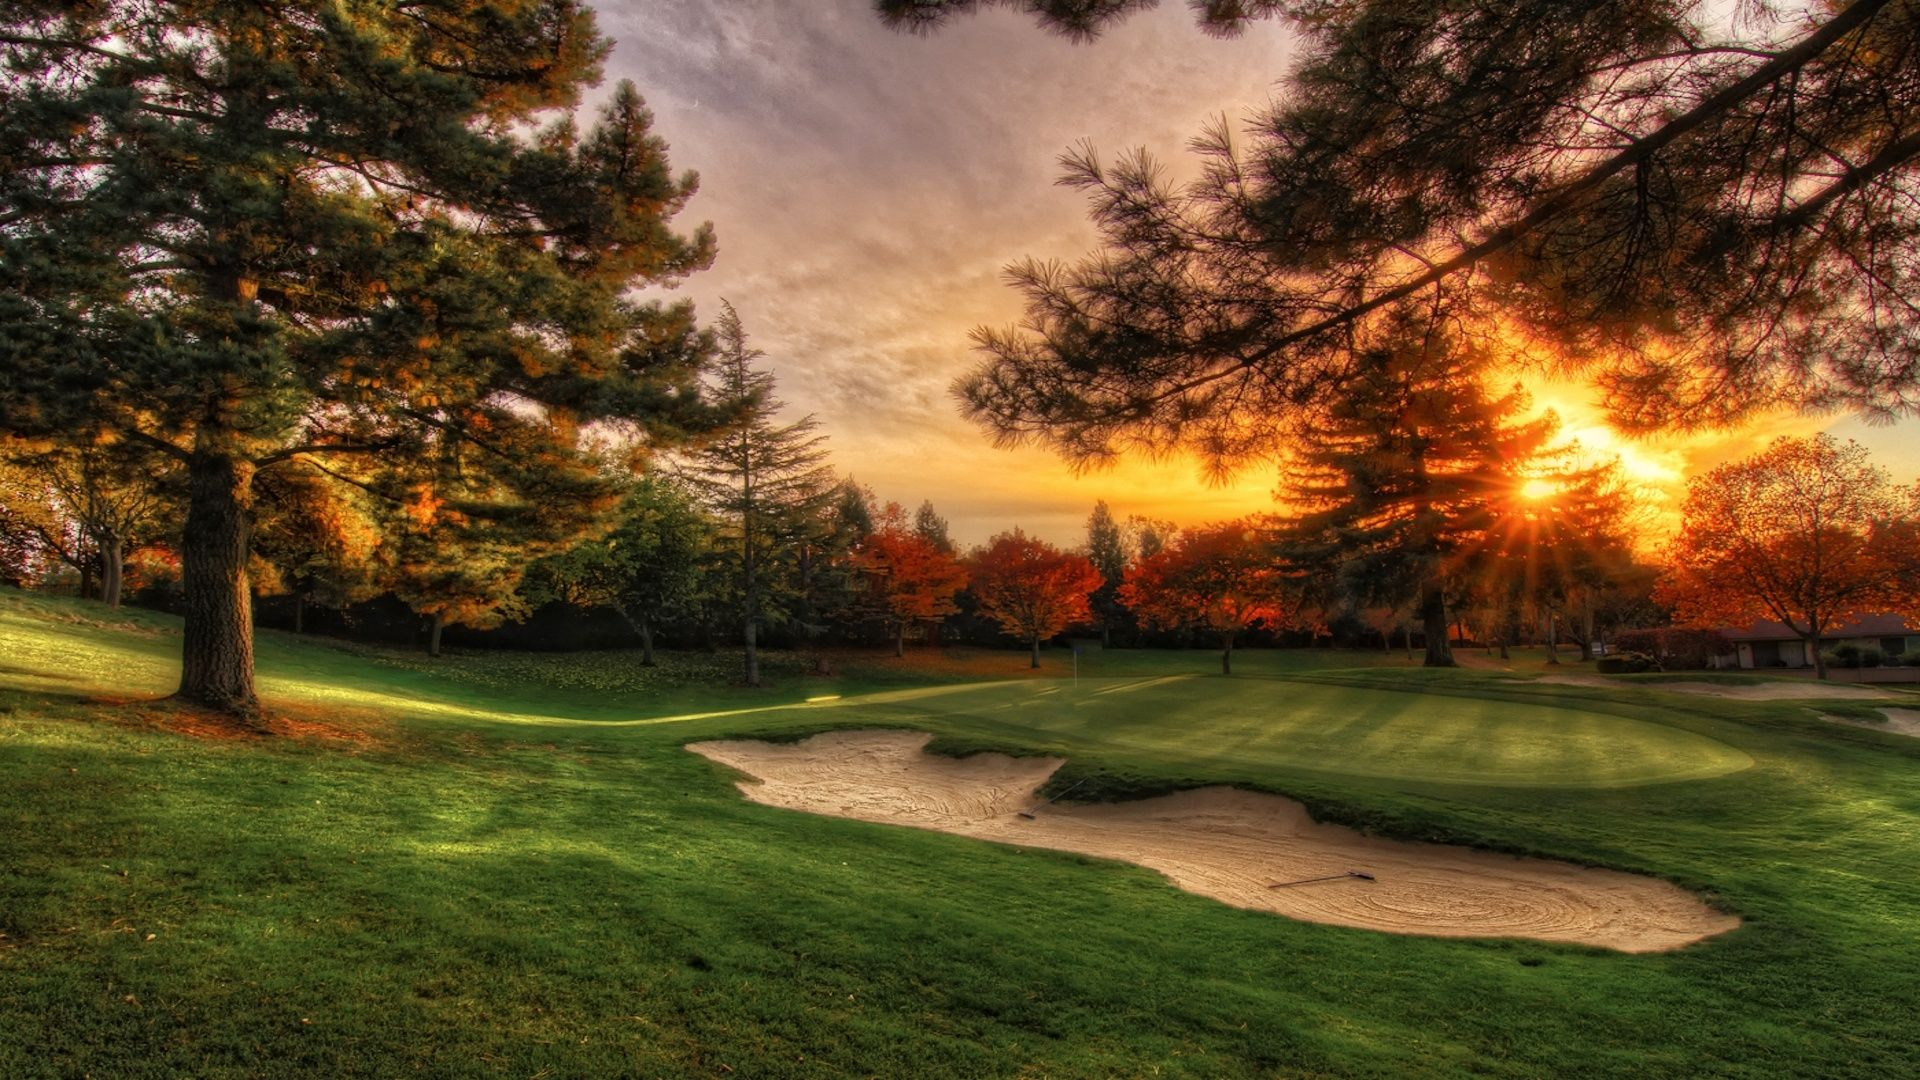 Golf Course HD Wallpaper Golf Course Pictures Cool Wallpapers 1920x1080